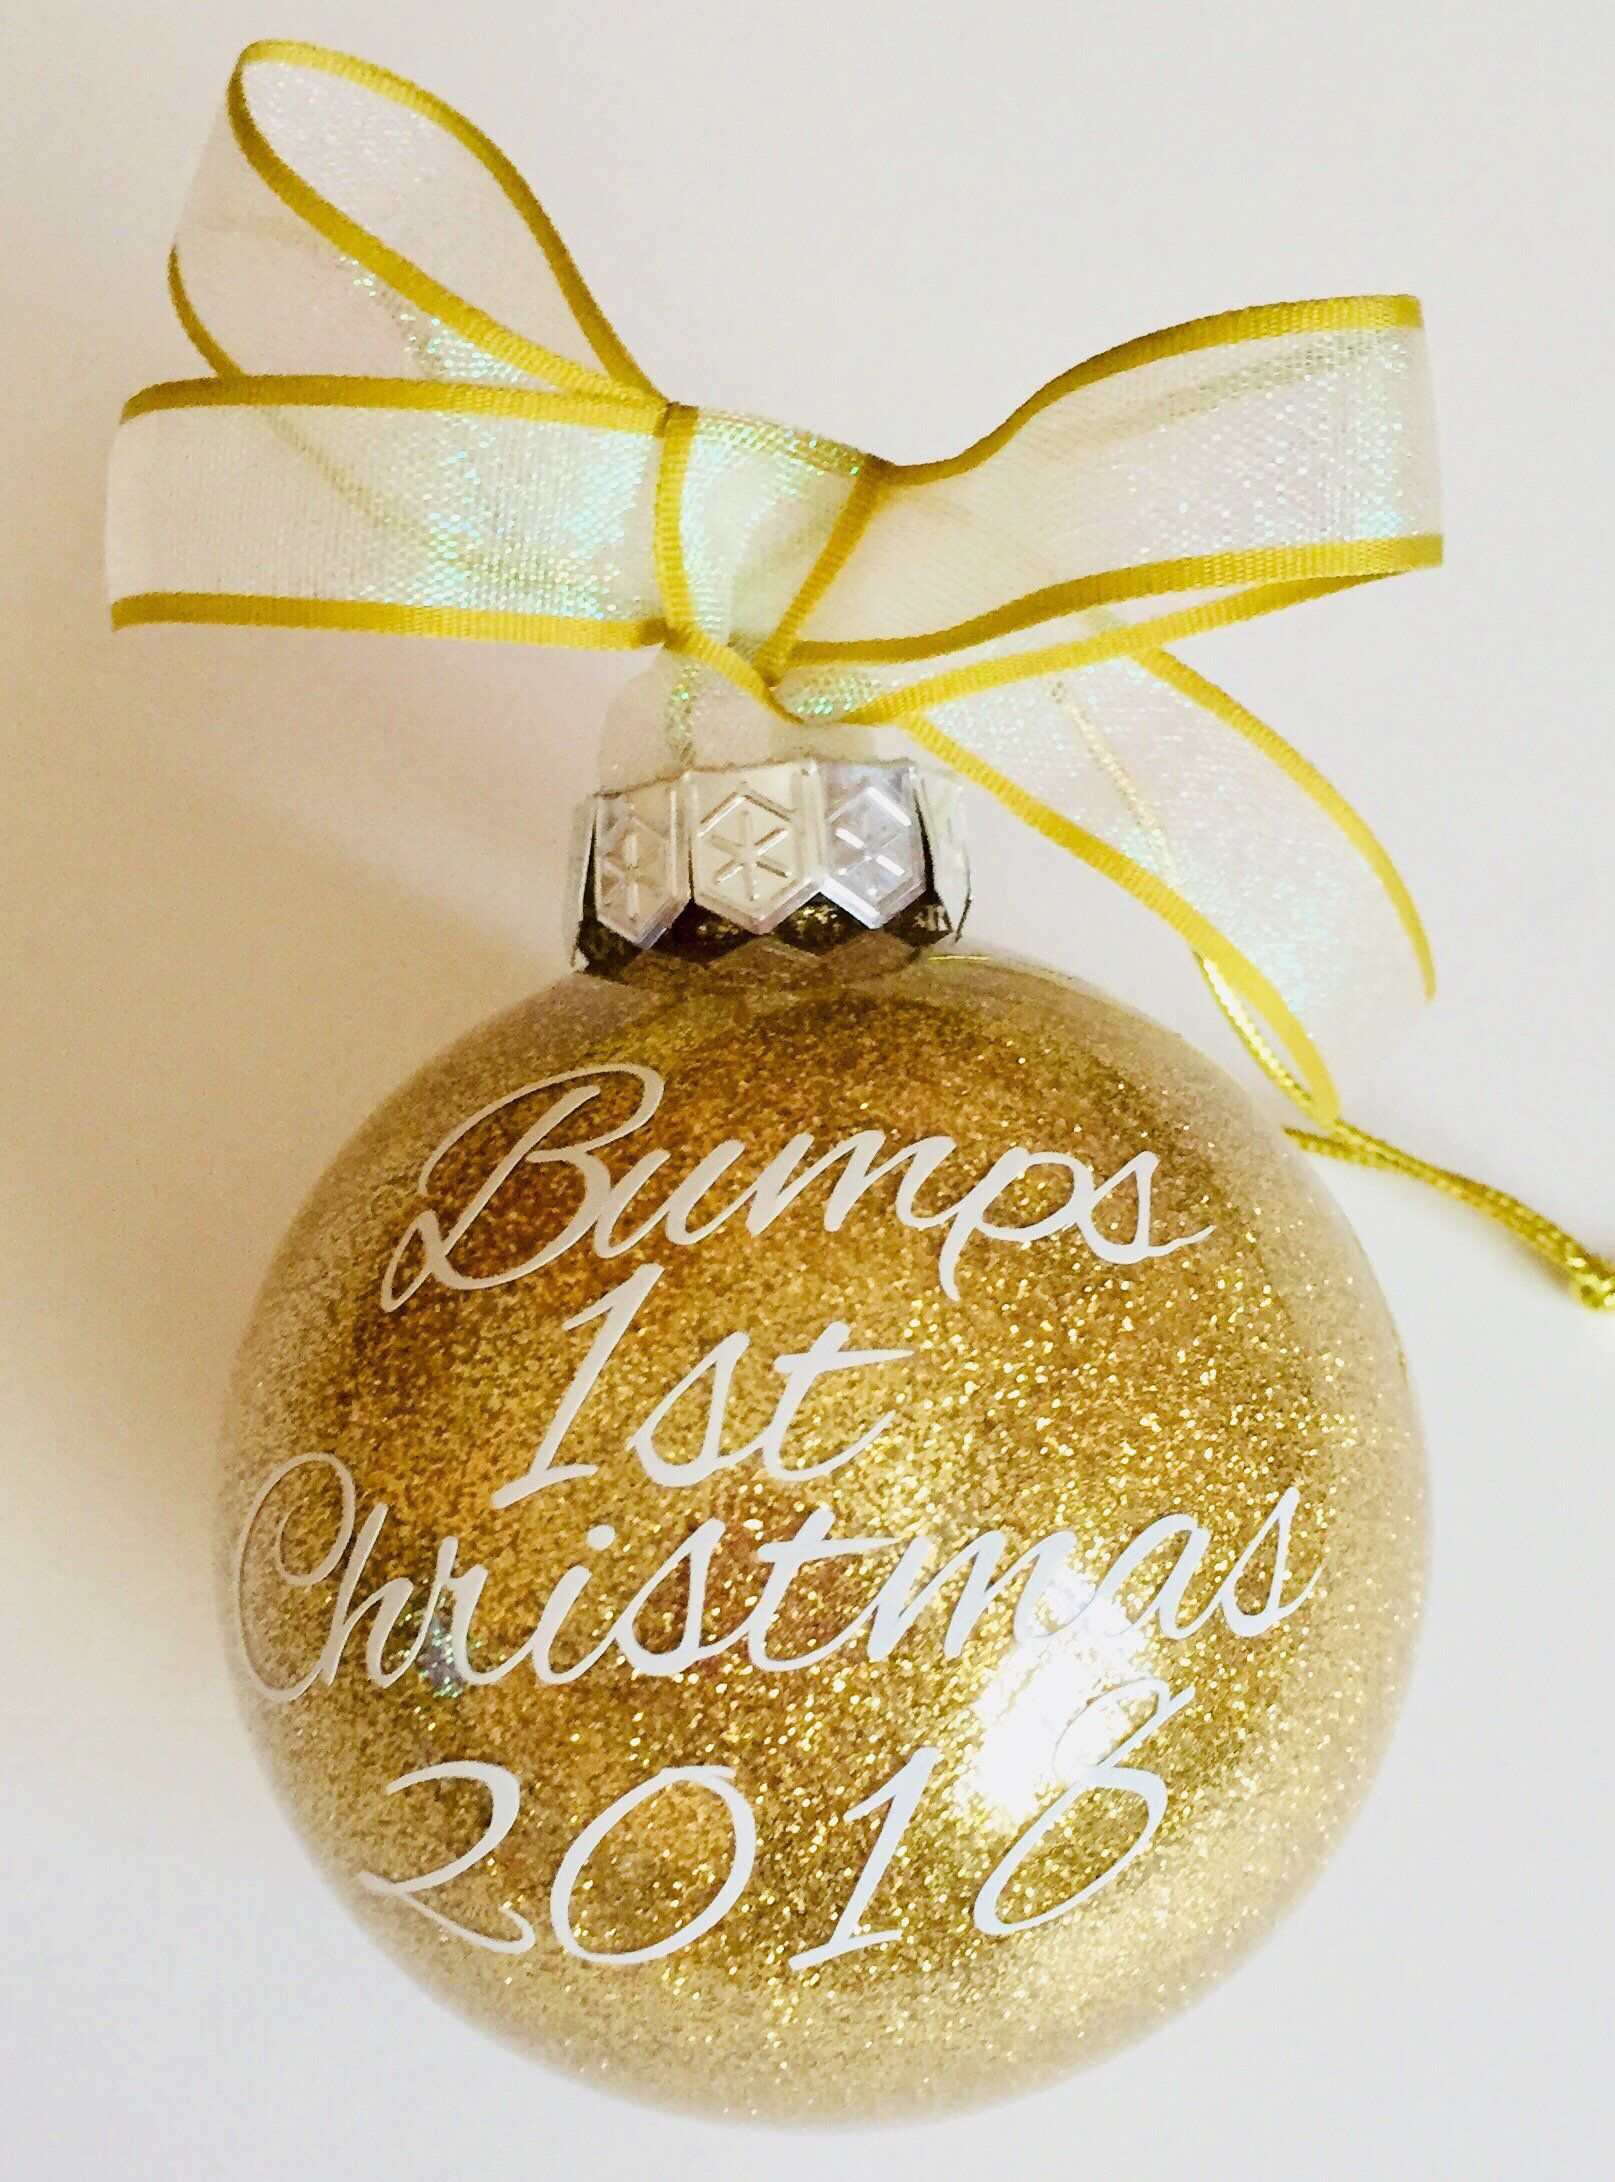 404aa377e0af2 Bumps 1st Christmas 2018 glitter bauble for expectant mum, maternity gift.  Buy it now. #bumps1stchristmas #christmasbauble #bauble #christmasornament  ...